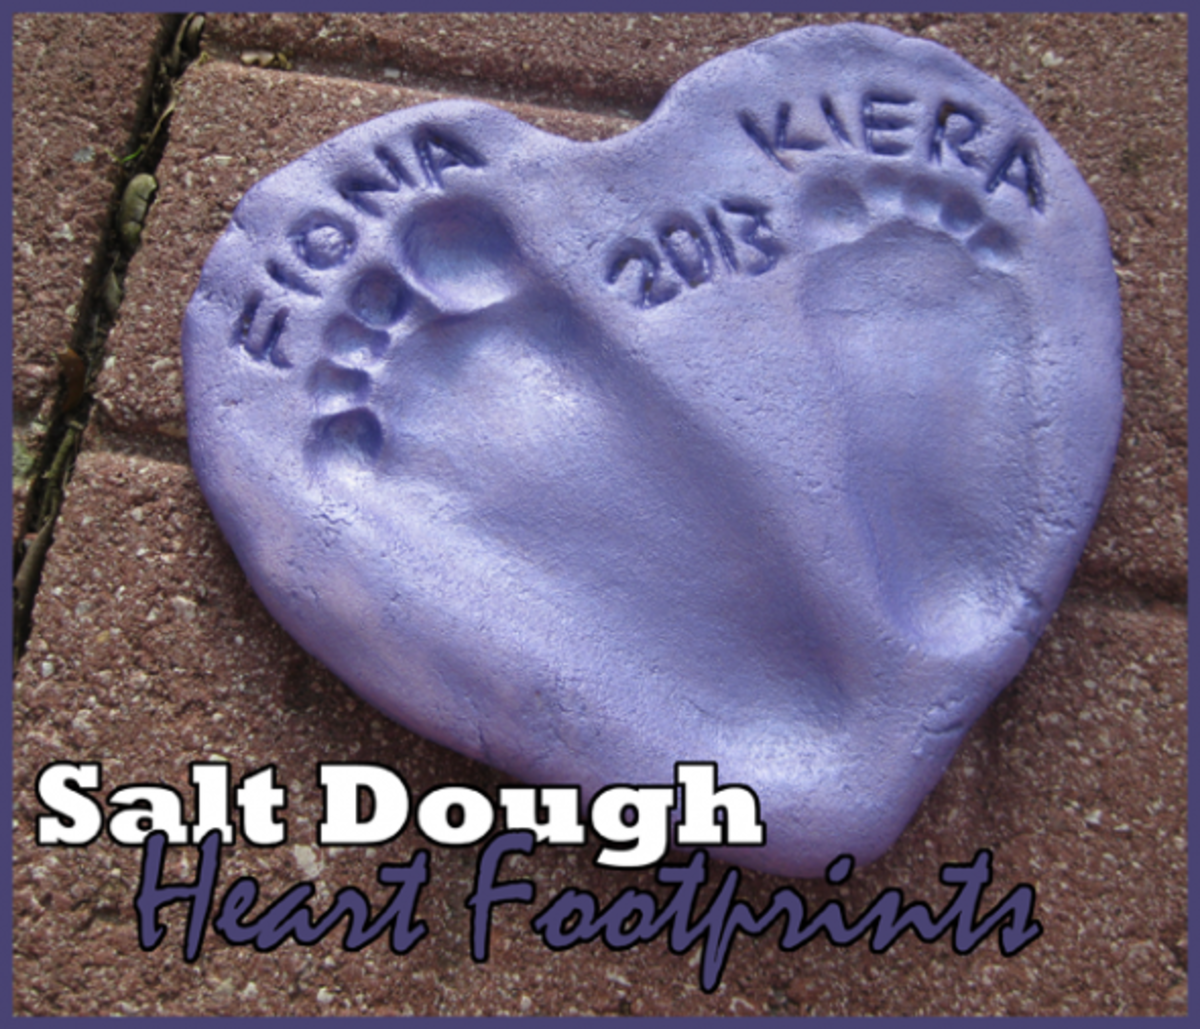 salt dough heart footprints gift toddler activity